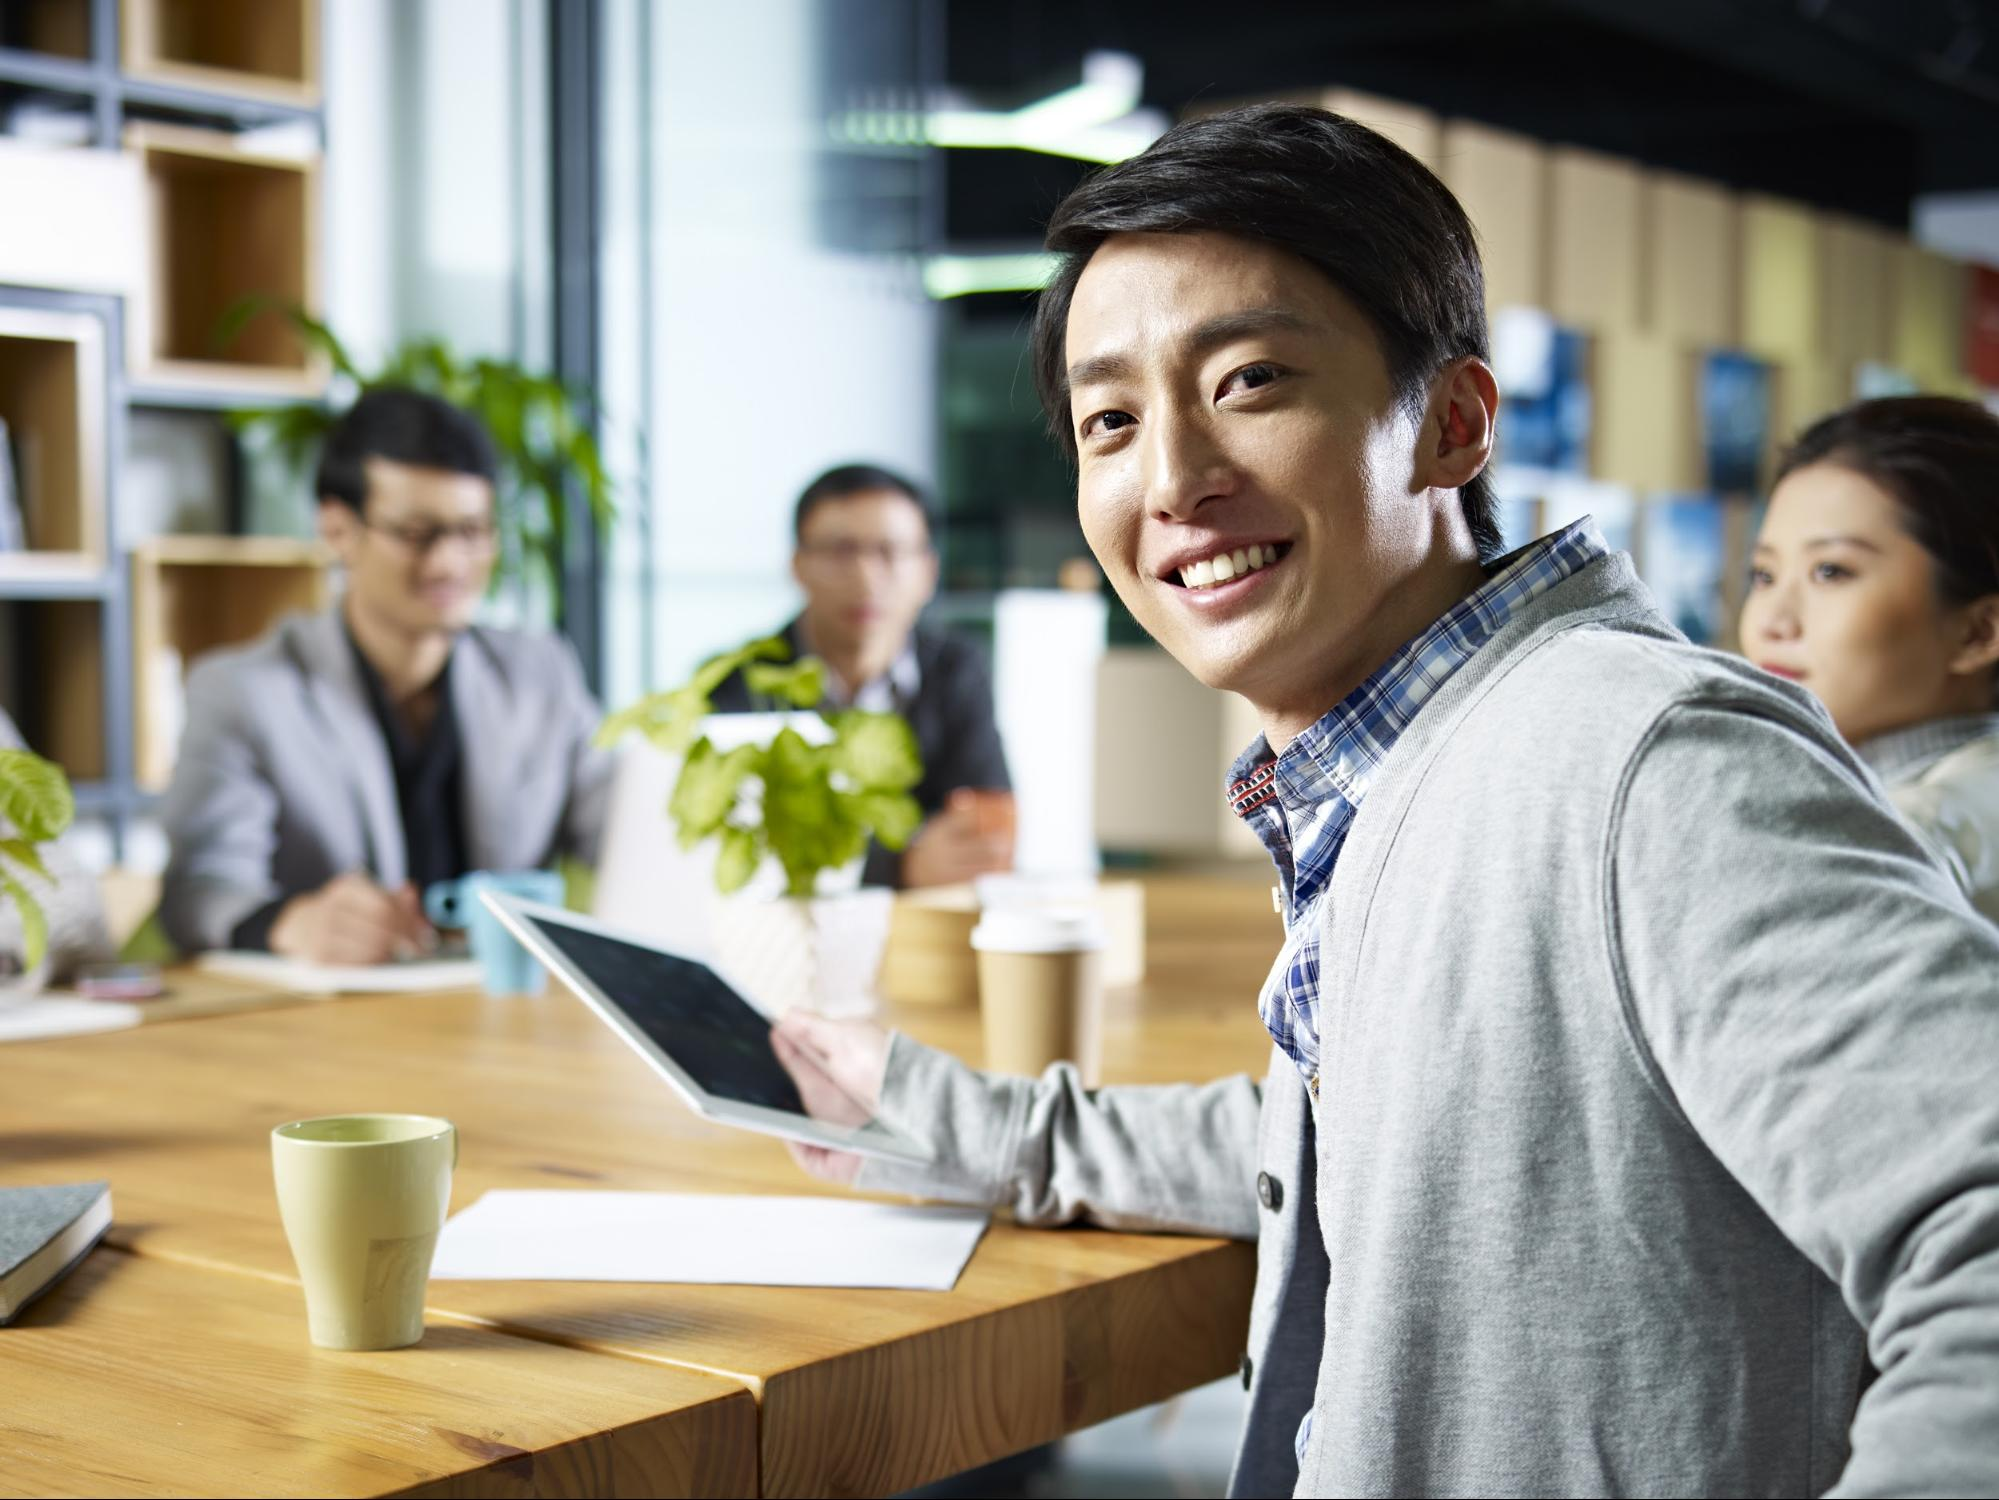 Fidelity internship: Businessman smiling at the camera while holding a tablet